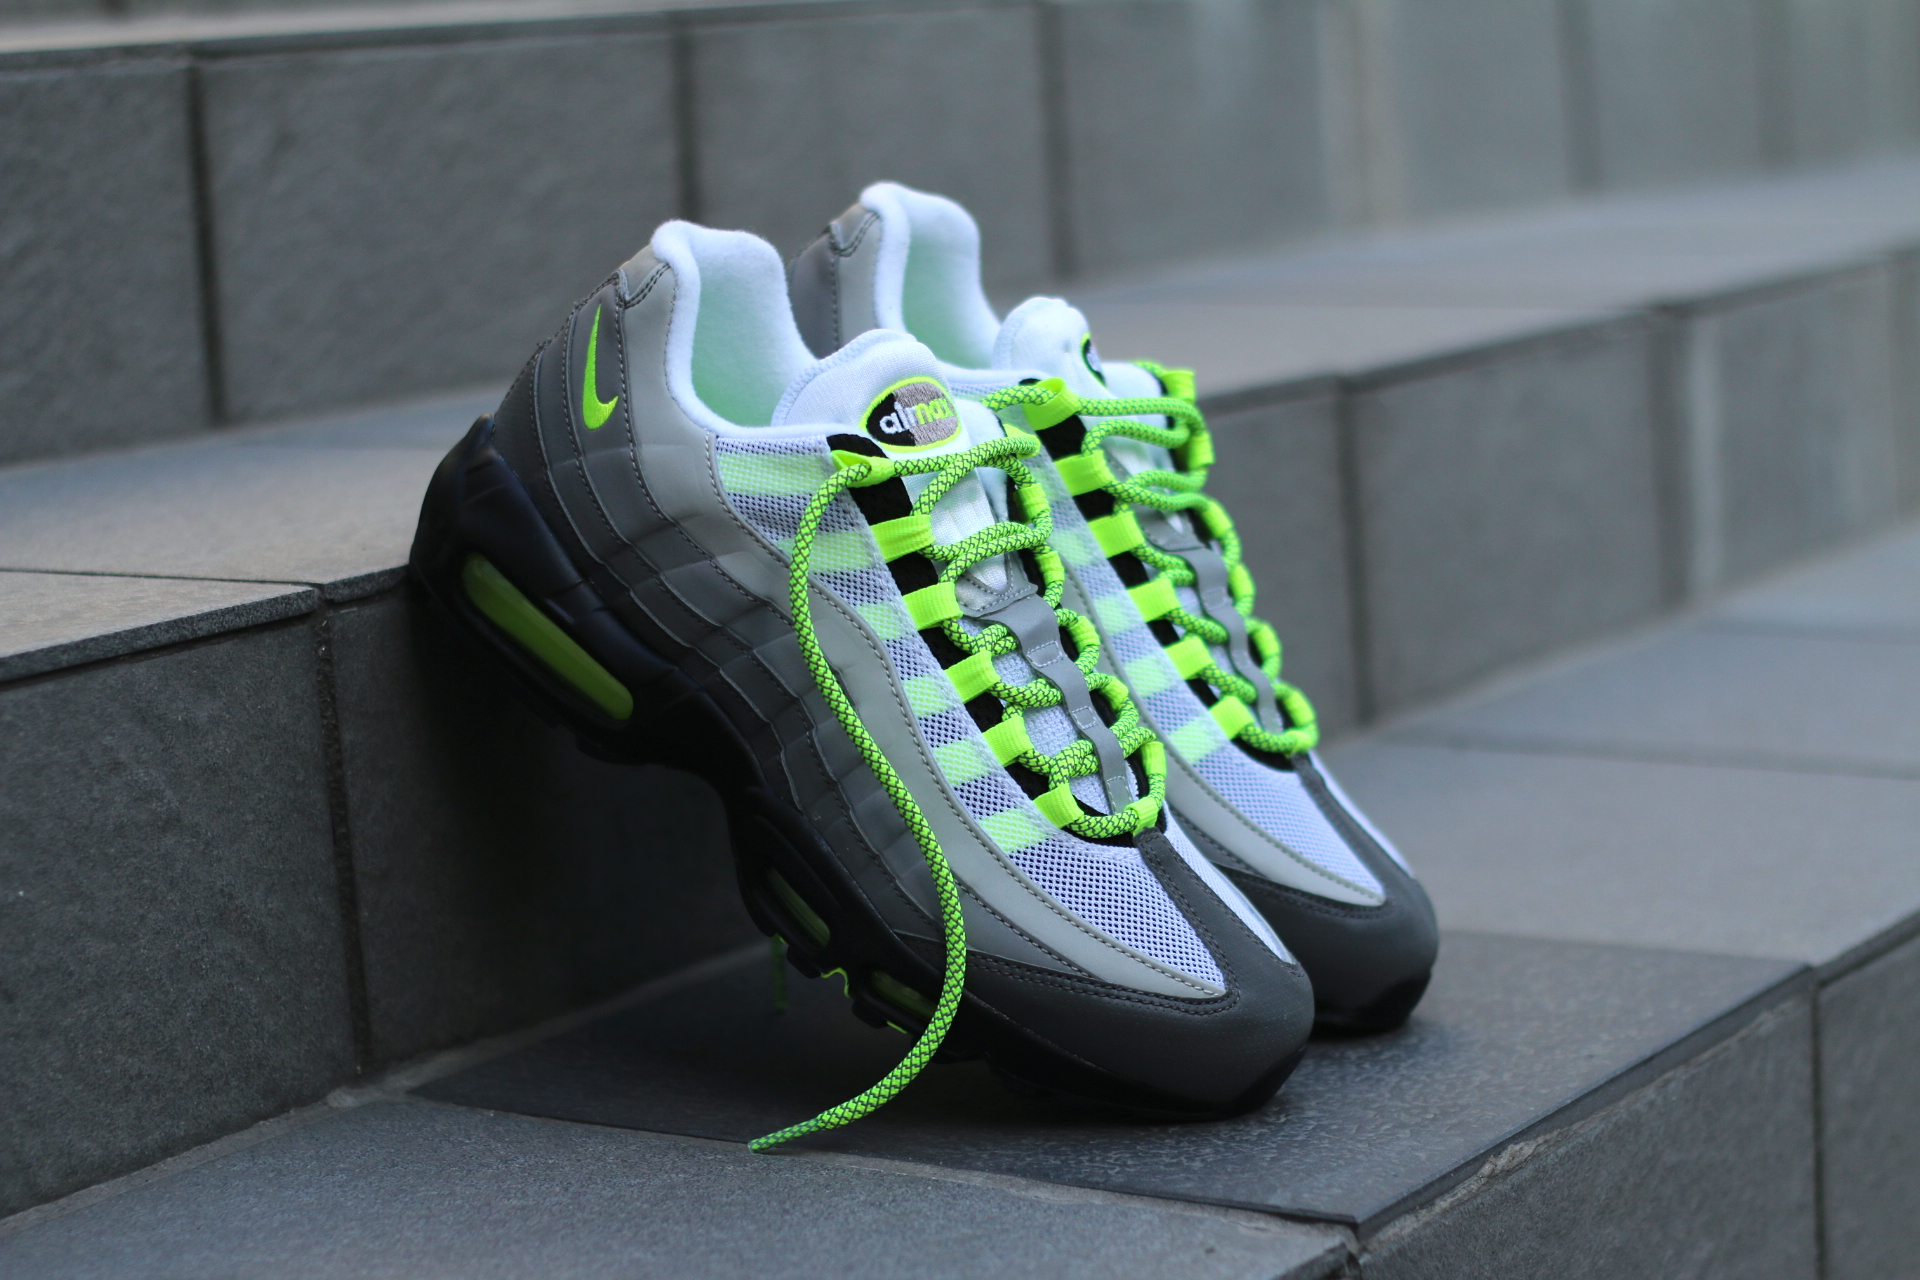 hot sale online a0cde f958e norway air max 95 3m neon 64fc4 8be8b